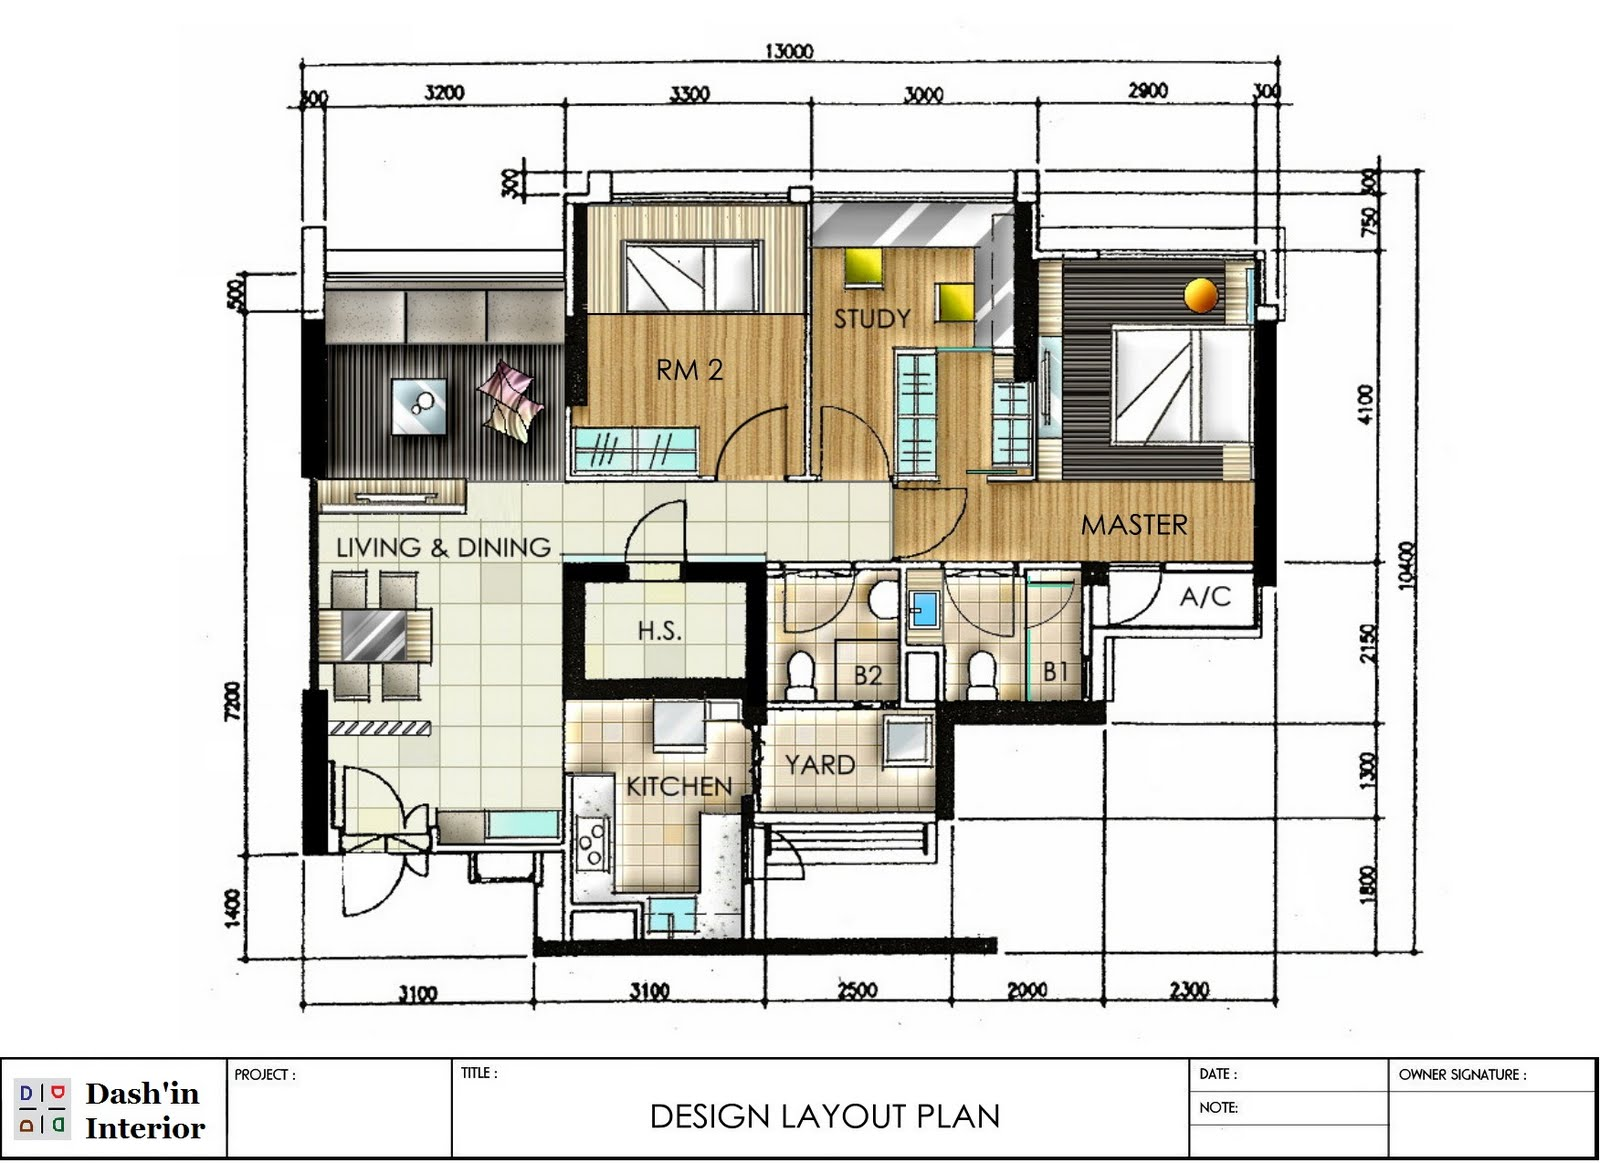 Dash 39 in interior hand drawn designs floor plan layout Floor plan design website